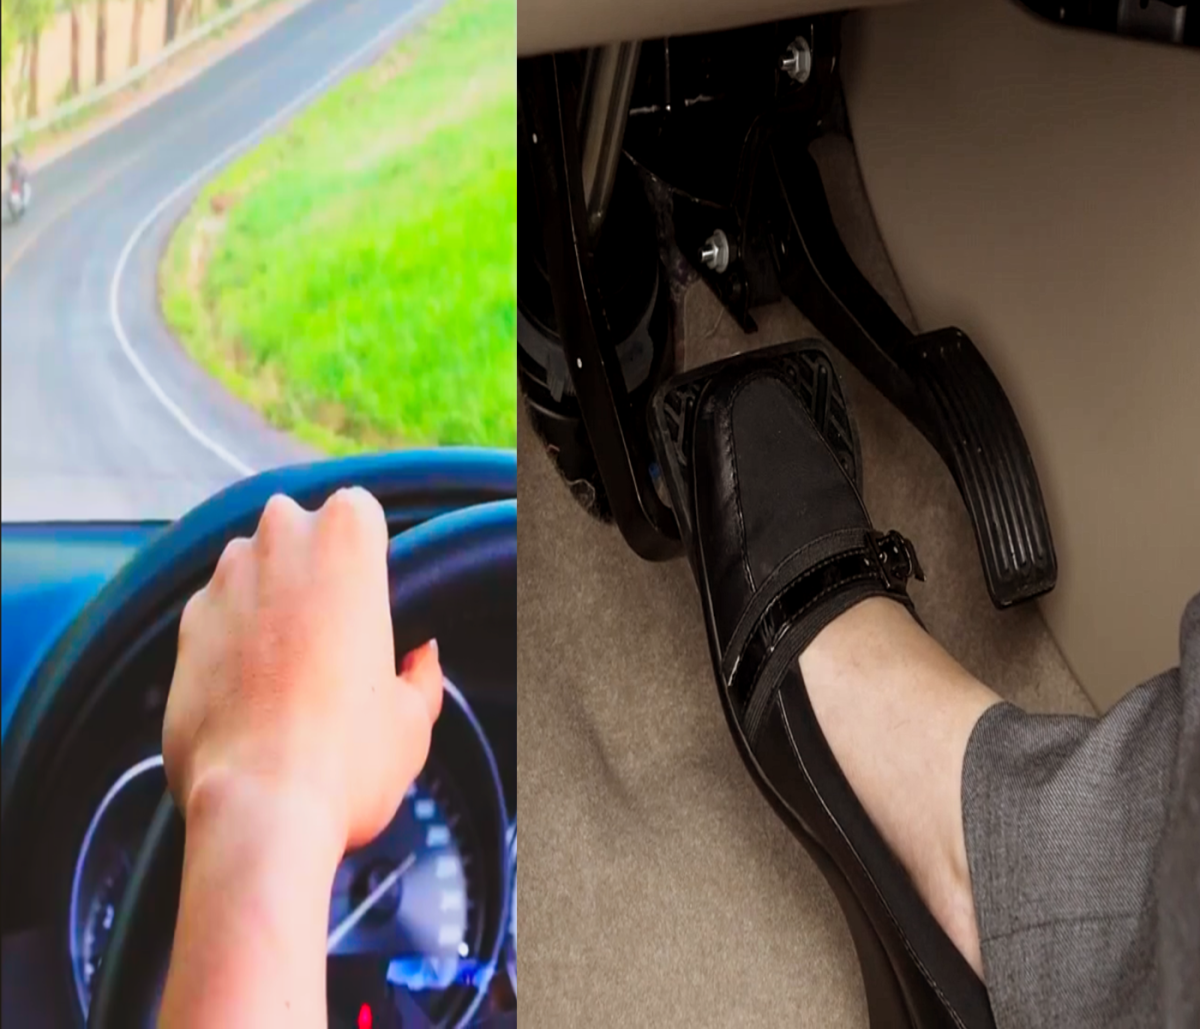 Keeping your foot on the brake while driving downhill puts unnecessary load on the braking system, which can lead to overheated brake rotors and in turn brake fade.